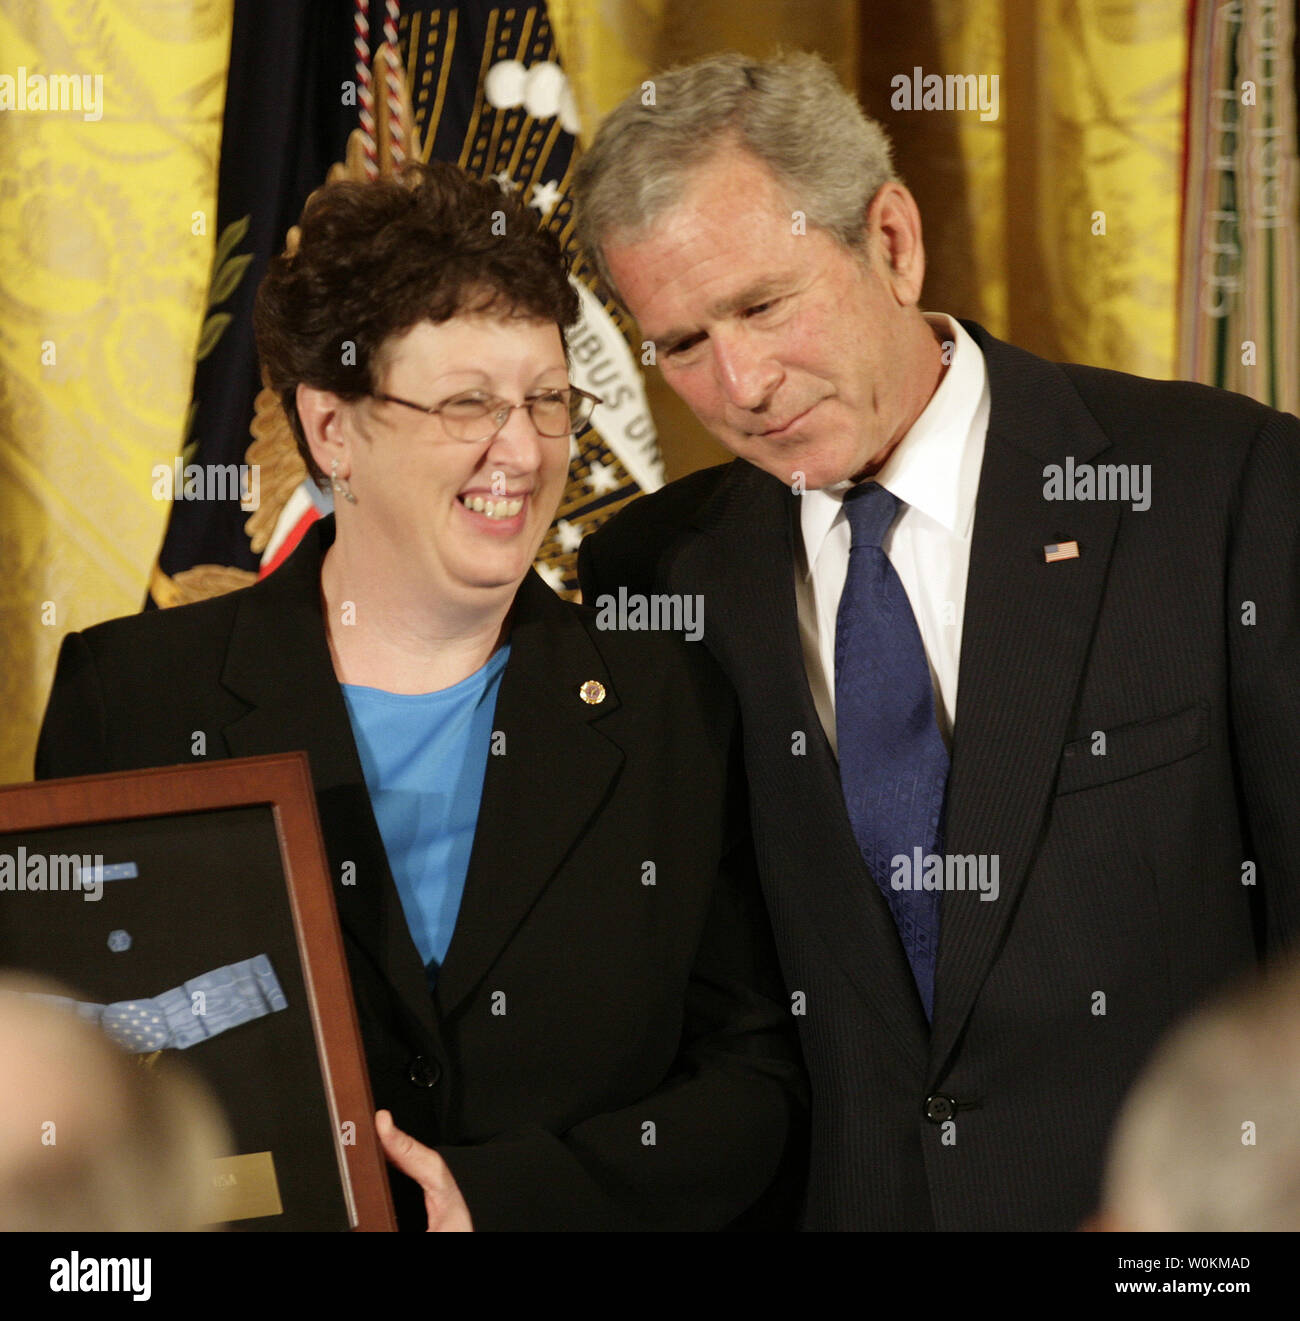 U.S. President George W. Bush (R) stands with Romayne McGinnis after presenting her with the Medal of Honor her son earned in Iraq at the White House in Washington on June 2, 2008. Army PFC Ross McGinnis, of Knox, Pennsylvania, who was killed in Iraq in 2006, at the White House in Washington on June 2, 2008. (UPI Photo/Yuri Gripas) - Stock Image